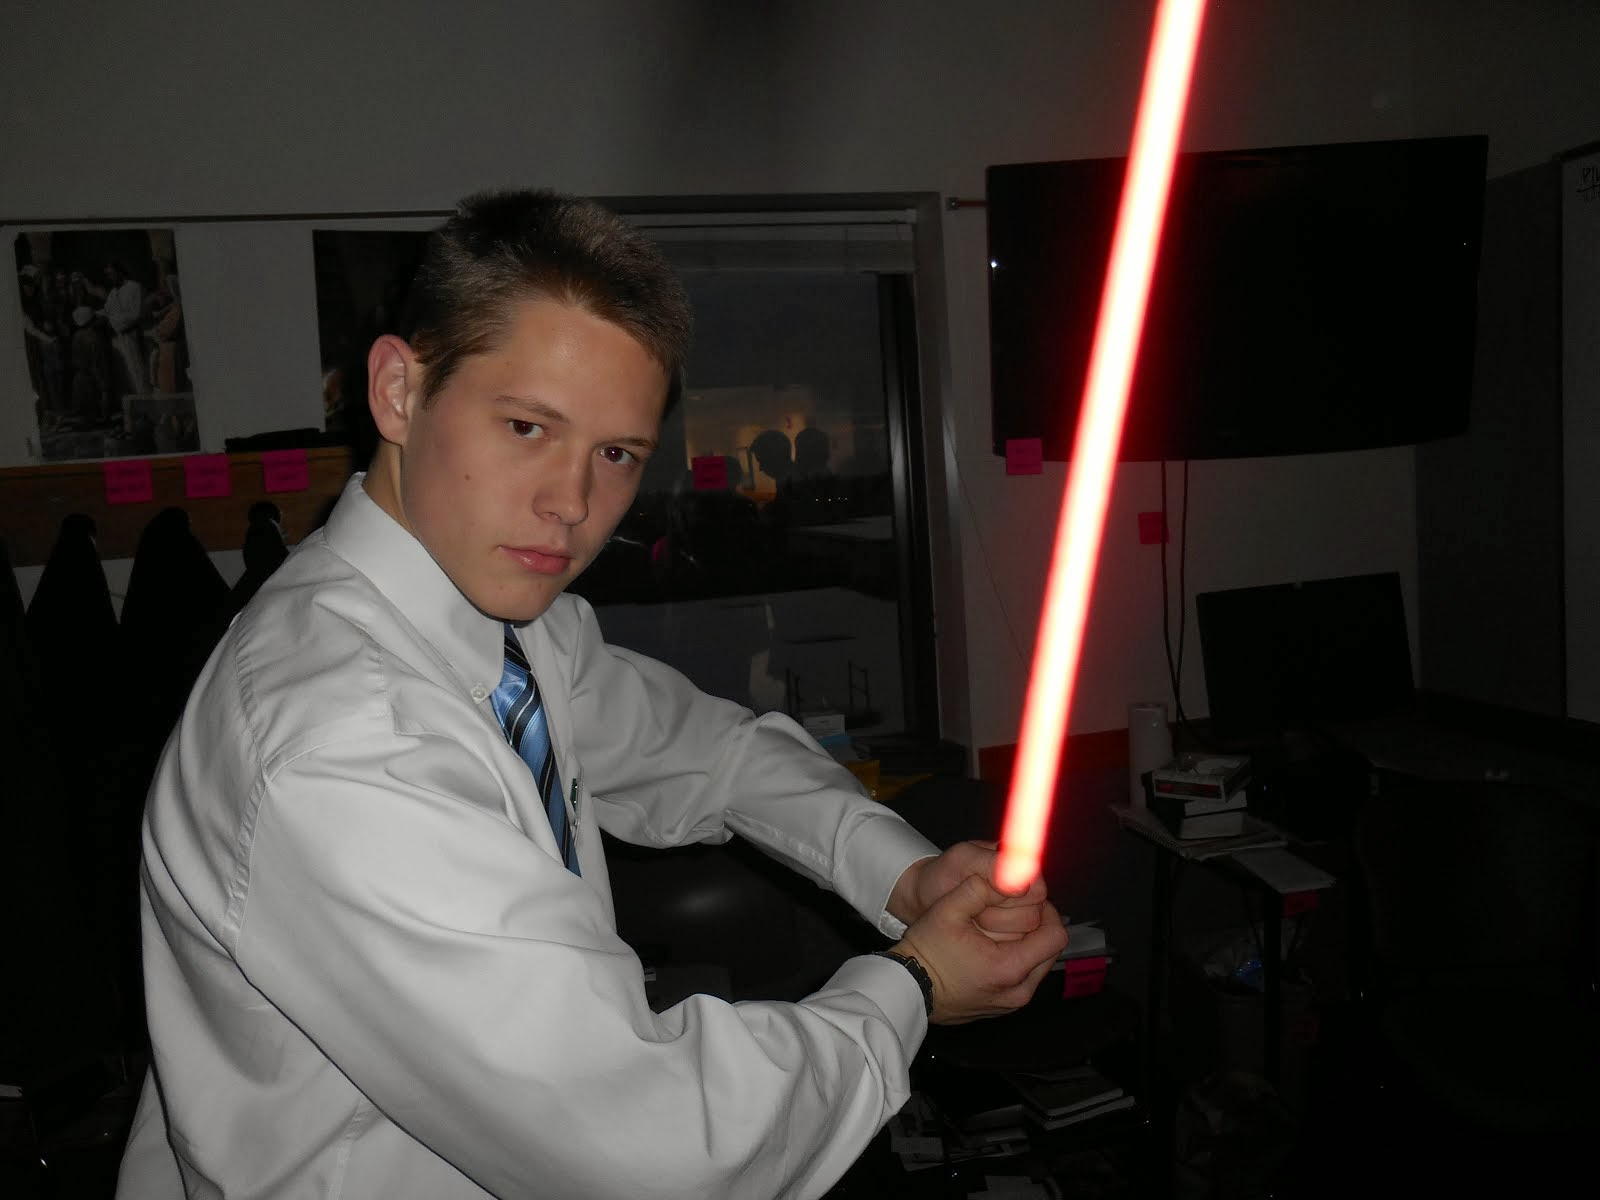 May the Force be with you, Elder Wilson